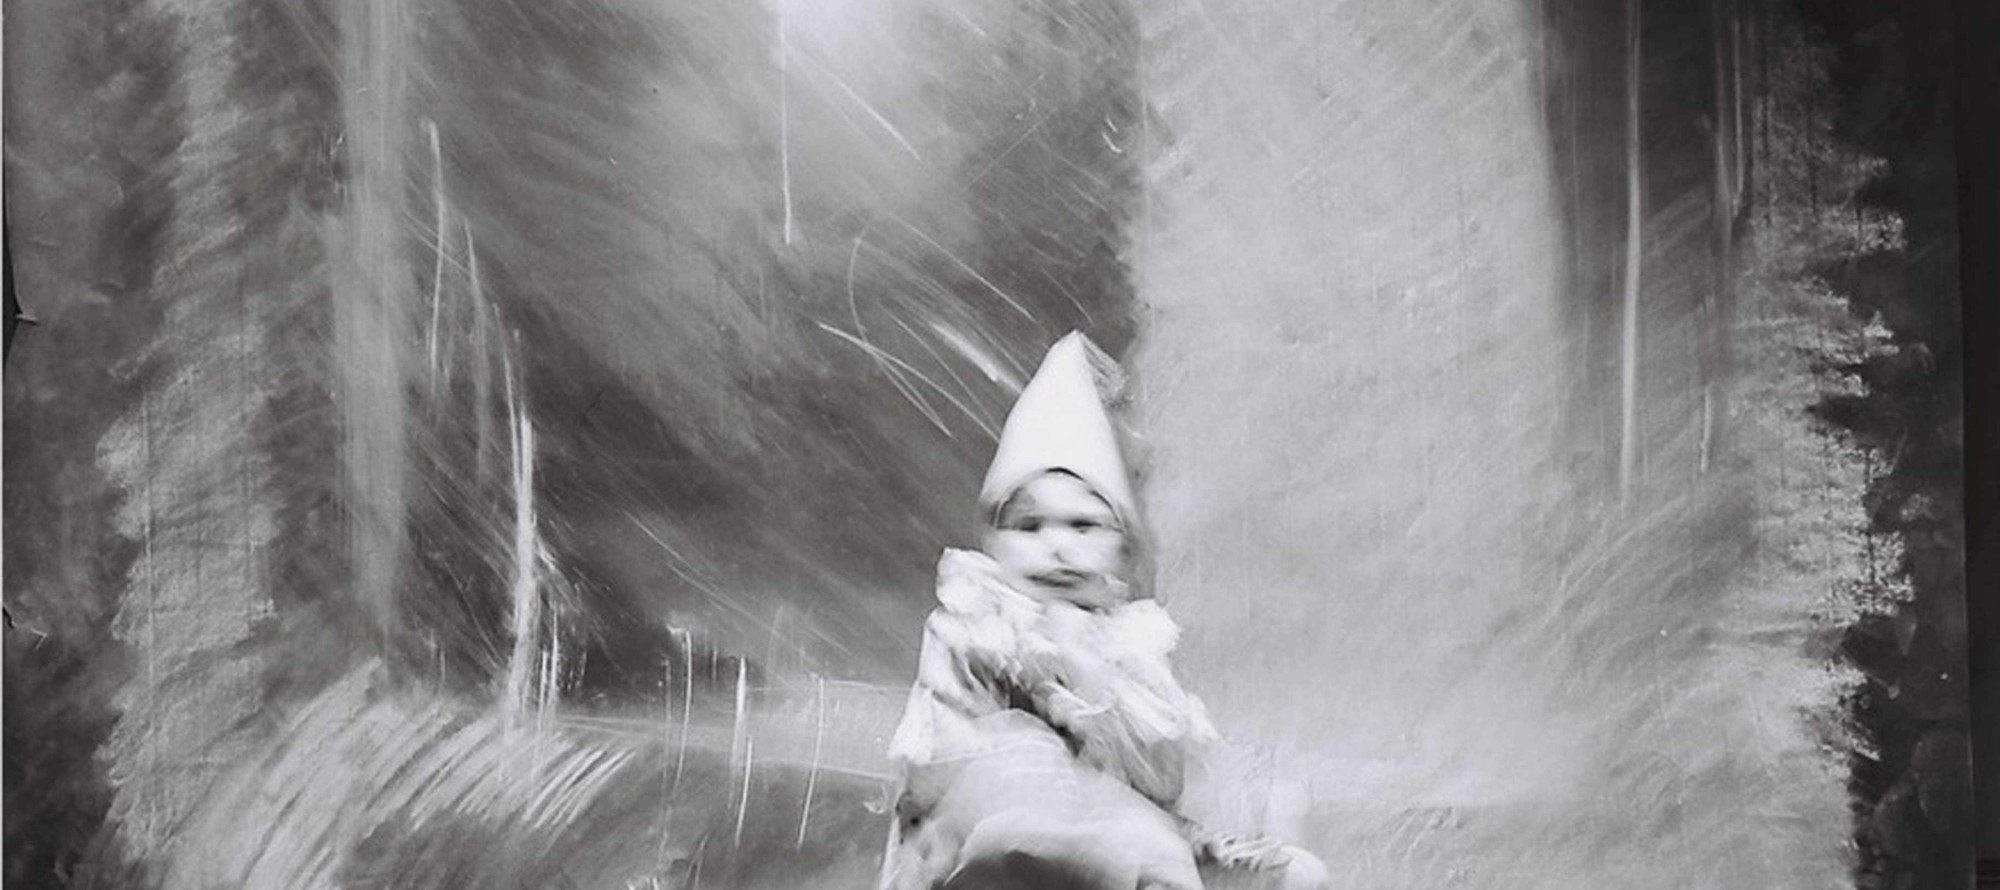 ARTFUL BLOGGER: Richard Nigro's spooky children star in an exhibition of the city's most recent art acquisitions